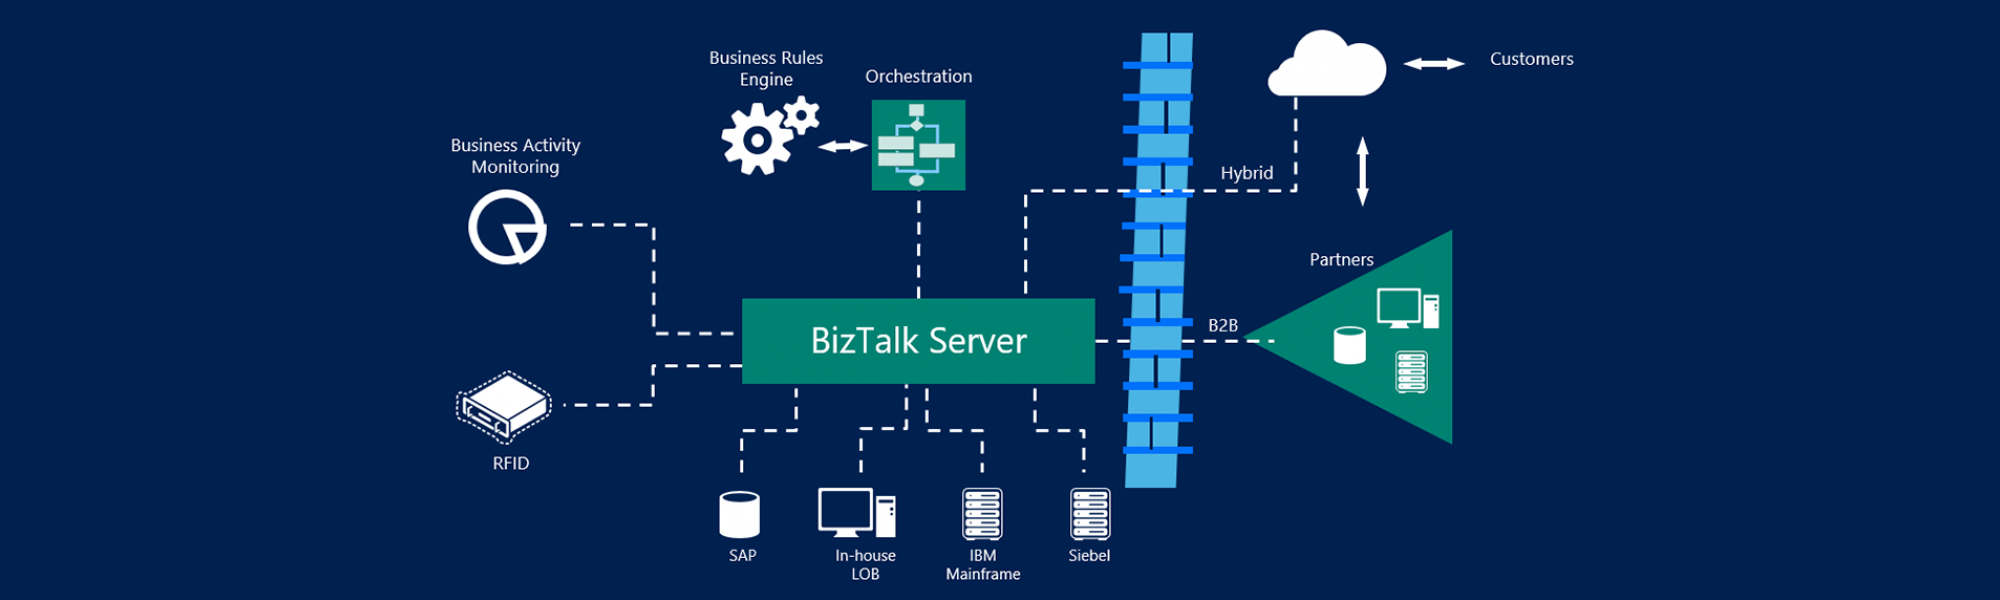 Why Microsoft BizTalk Server?